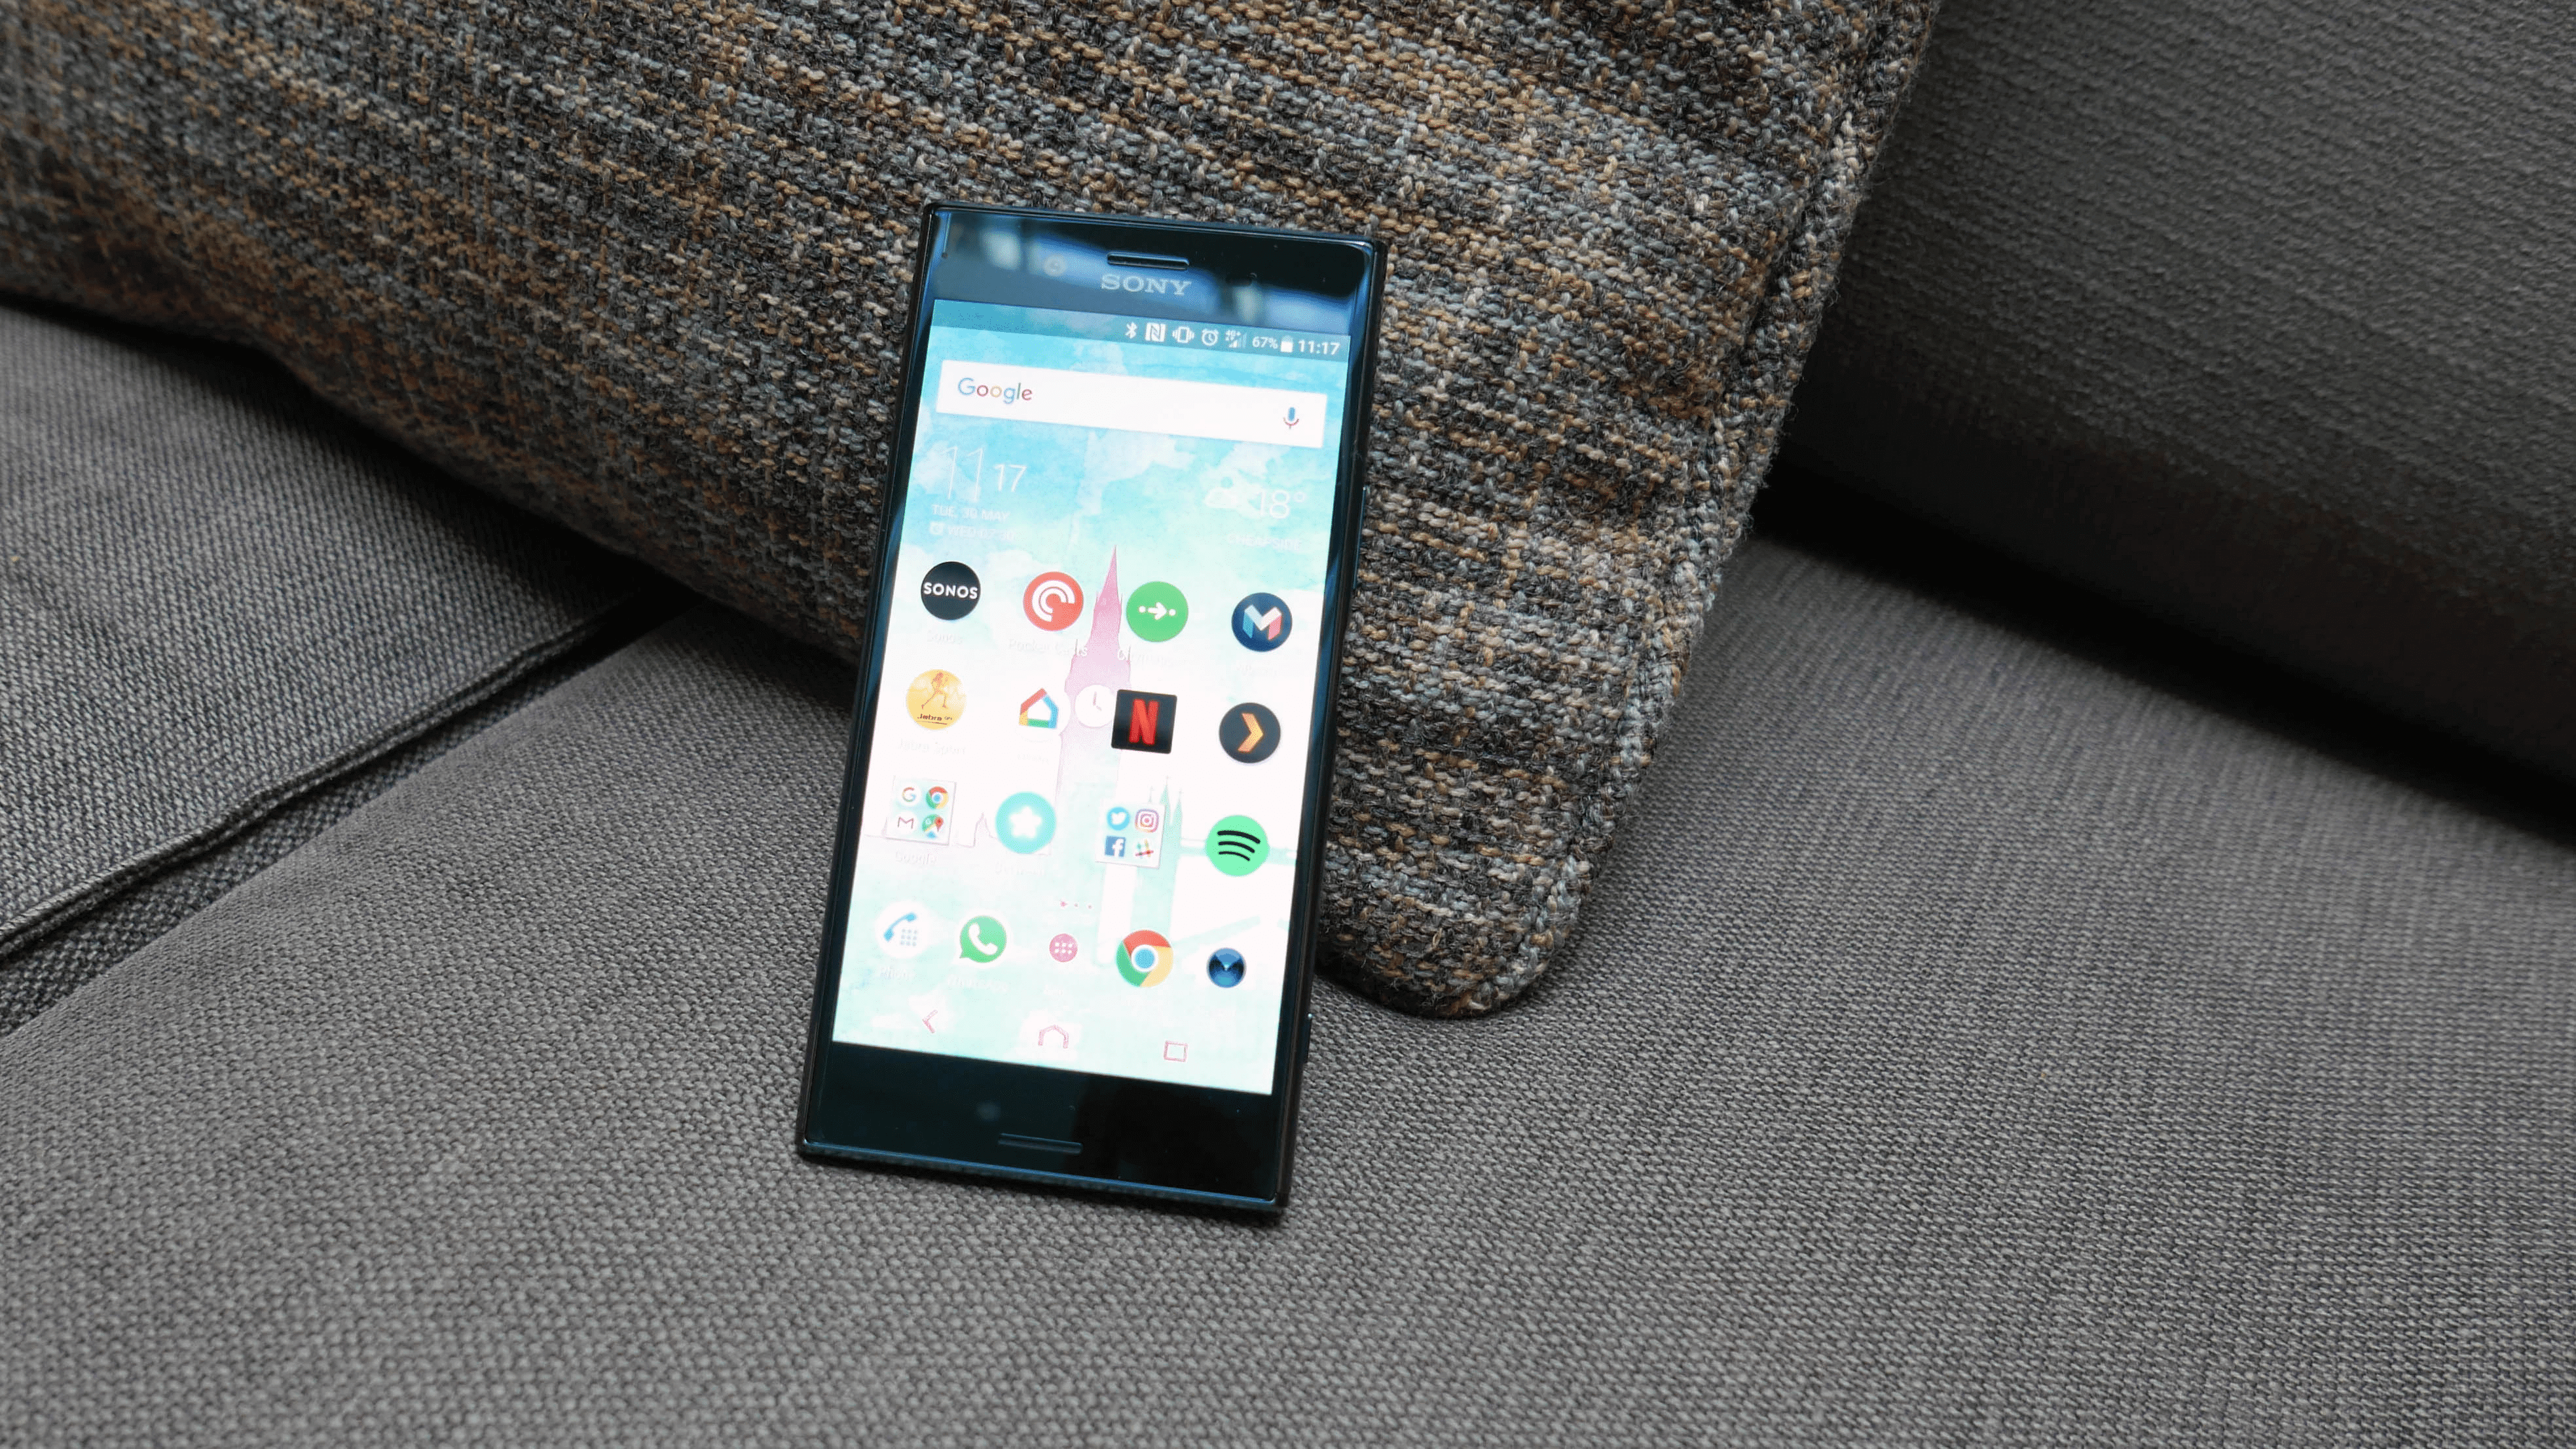 Xperia XZ Premium updated on Android 8.0 Oreo official udpate 11